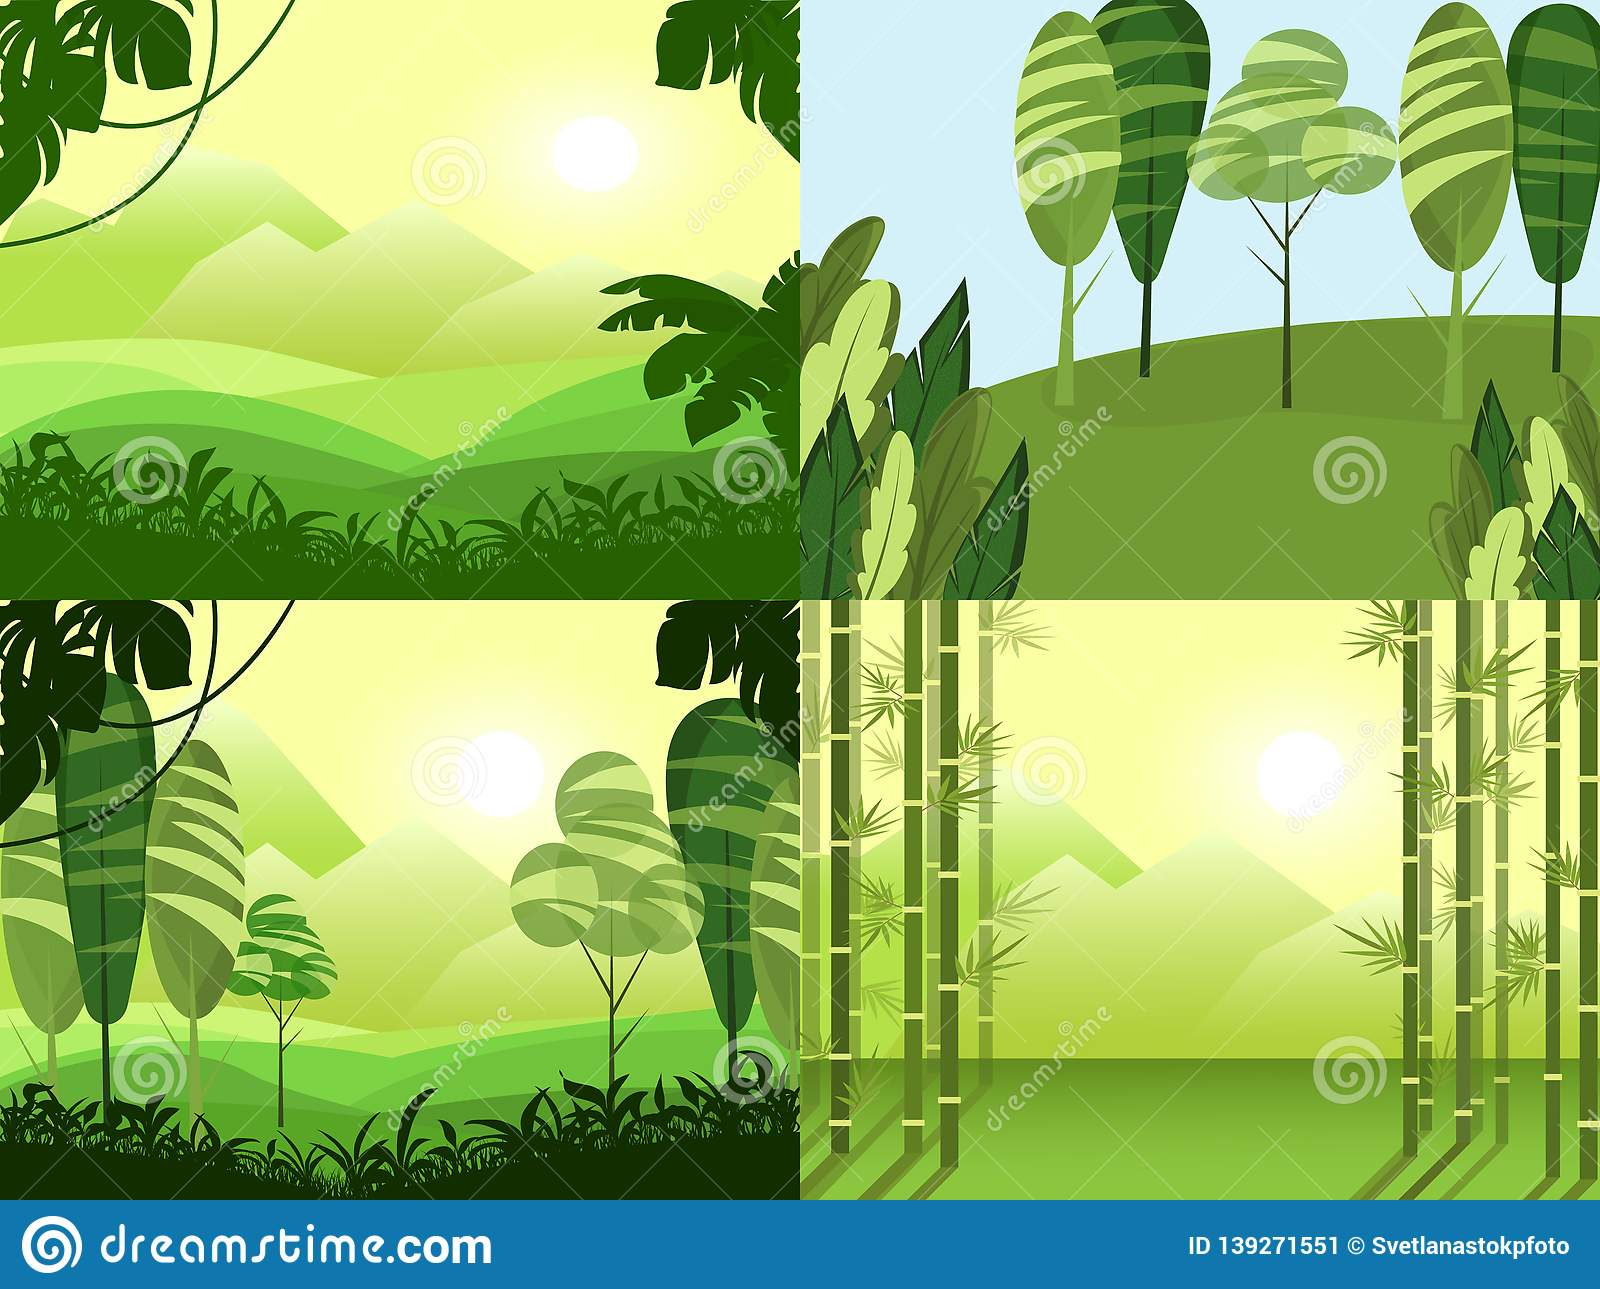 Vector banners set with cartoon green polygonal landscape. Travel rest sky mountains trees hills. Background